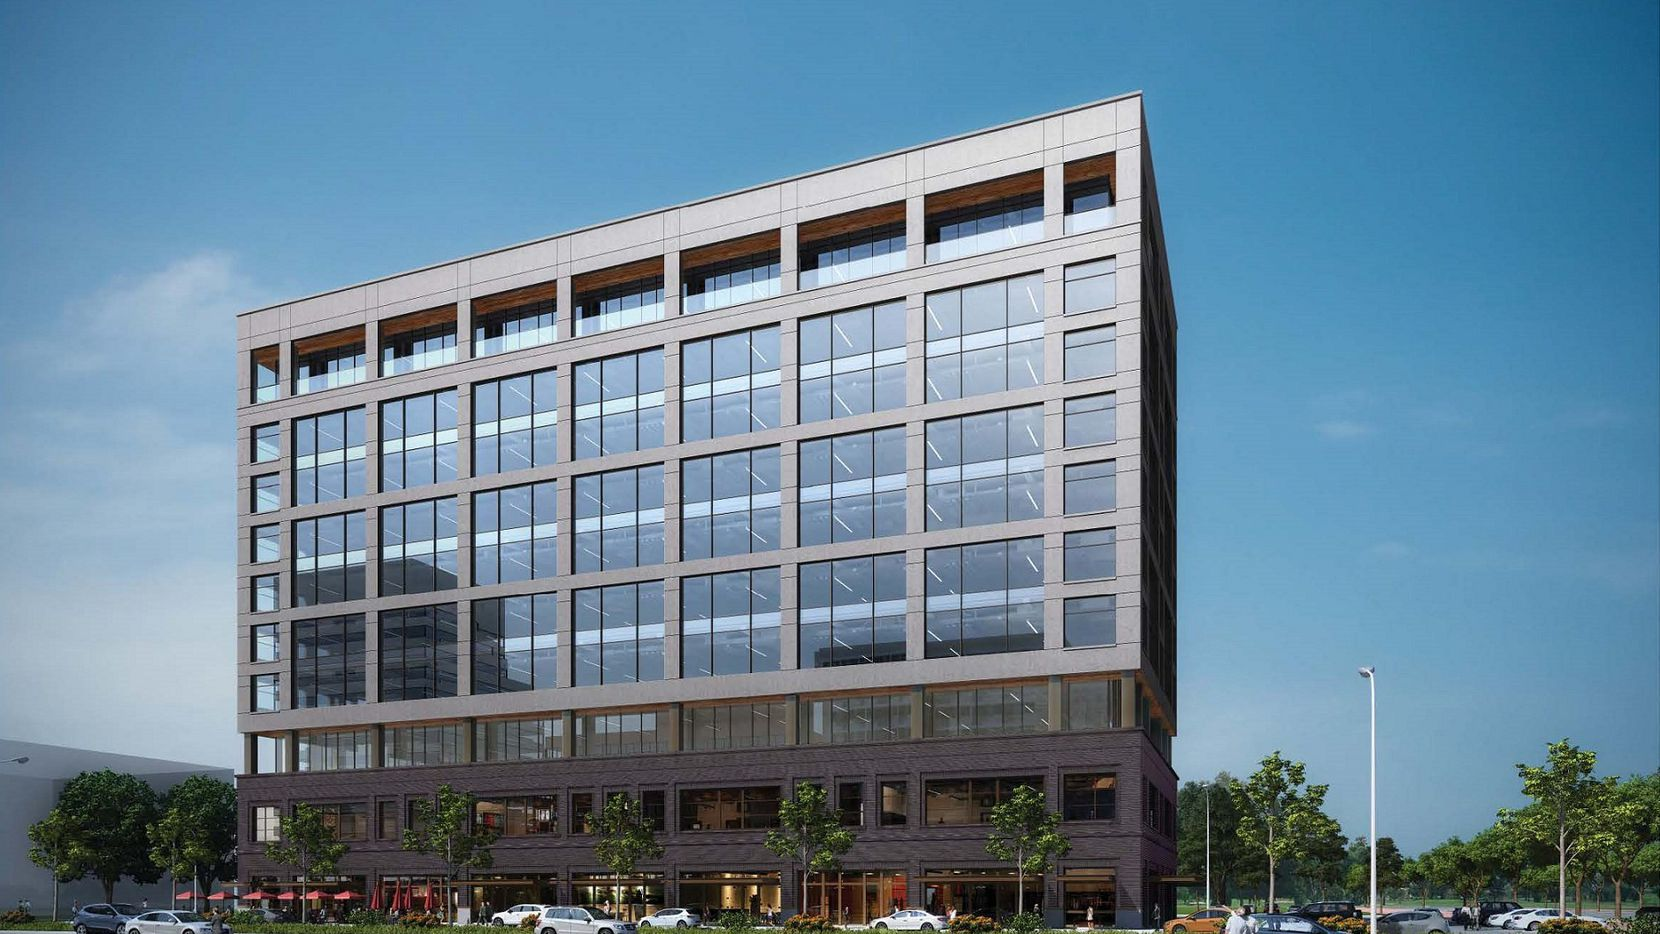 The planned Railhead office tower will have 250,000 square feet.